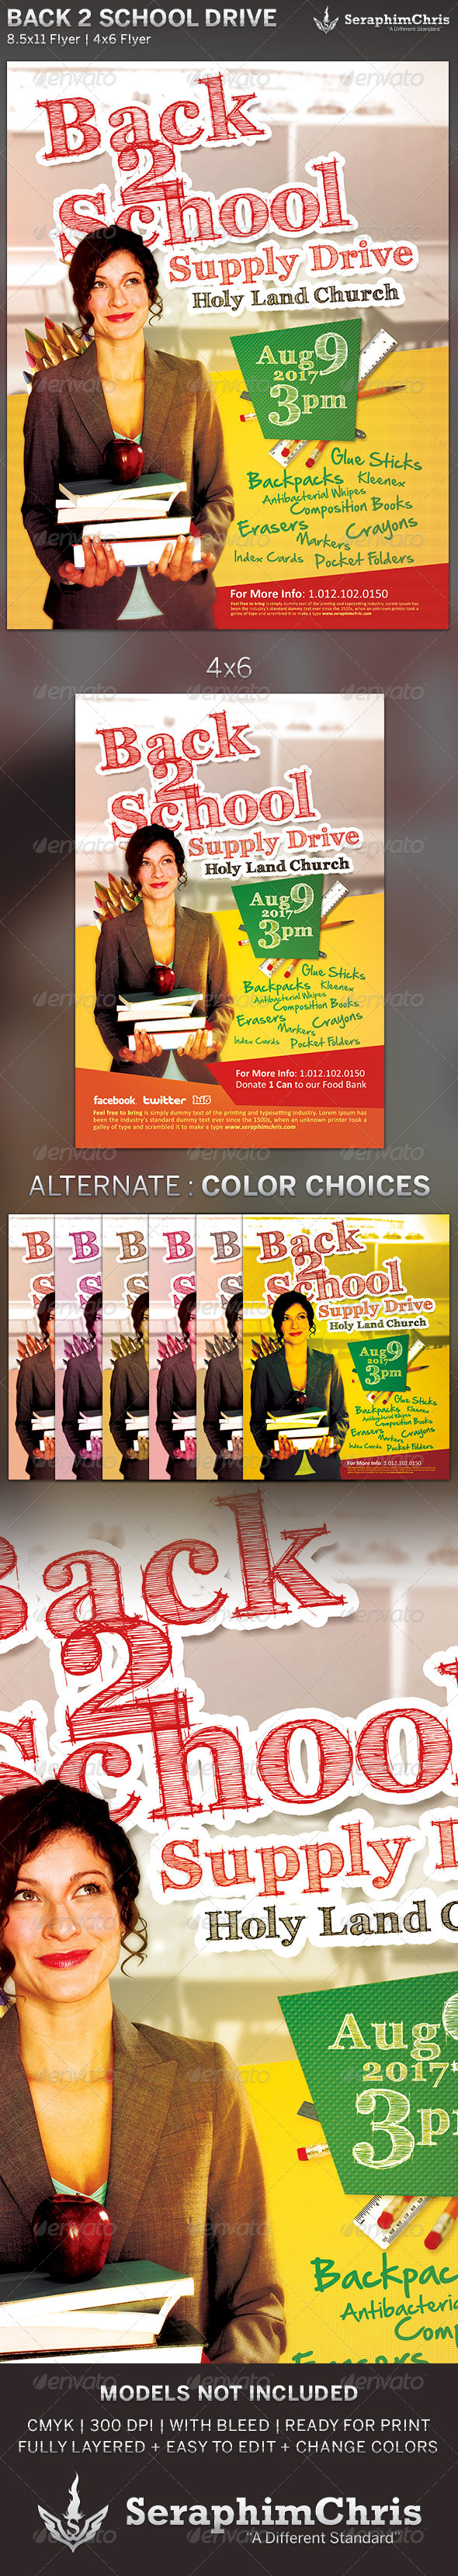 GraphicRiver Back to School Drive Church Flyer Template 5249054